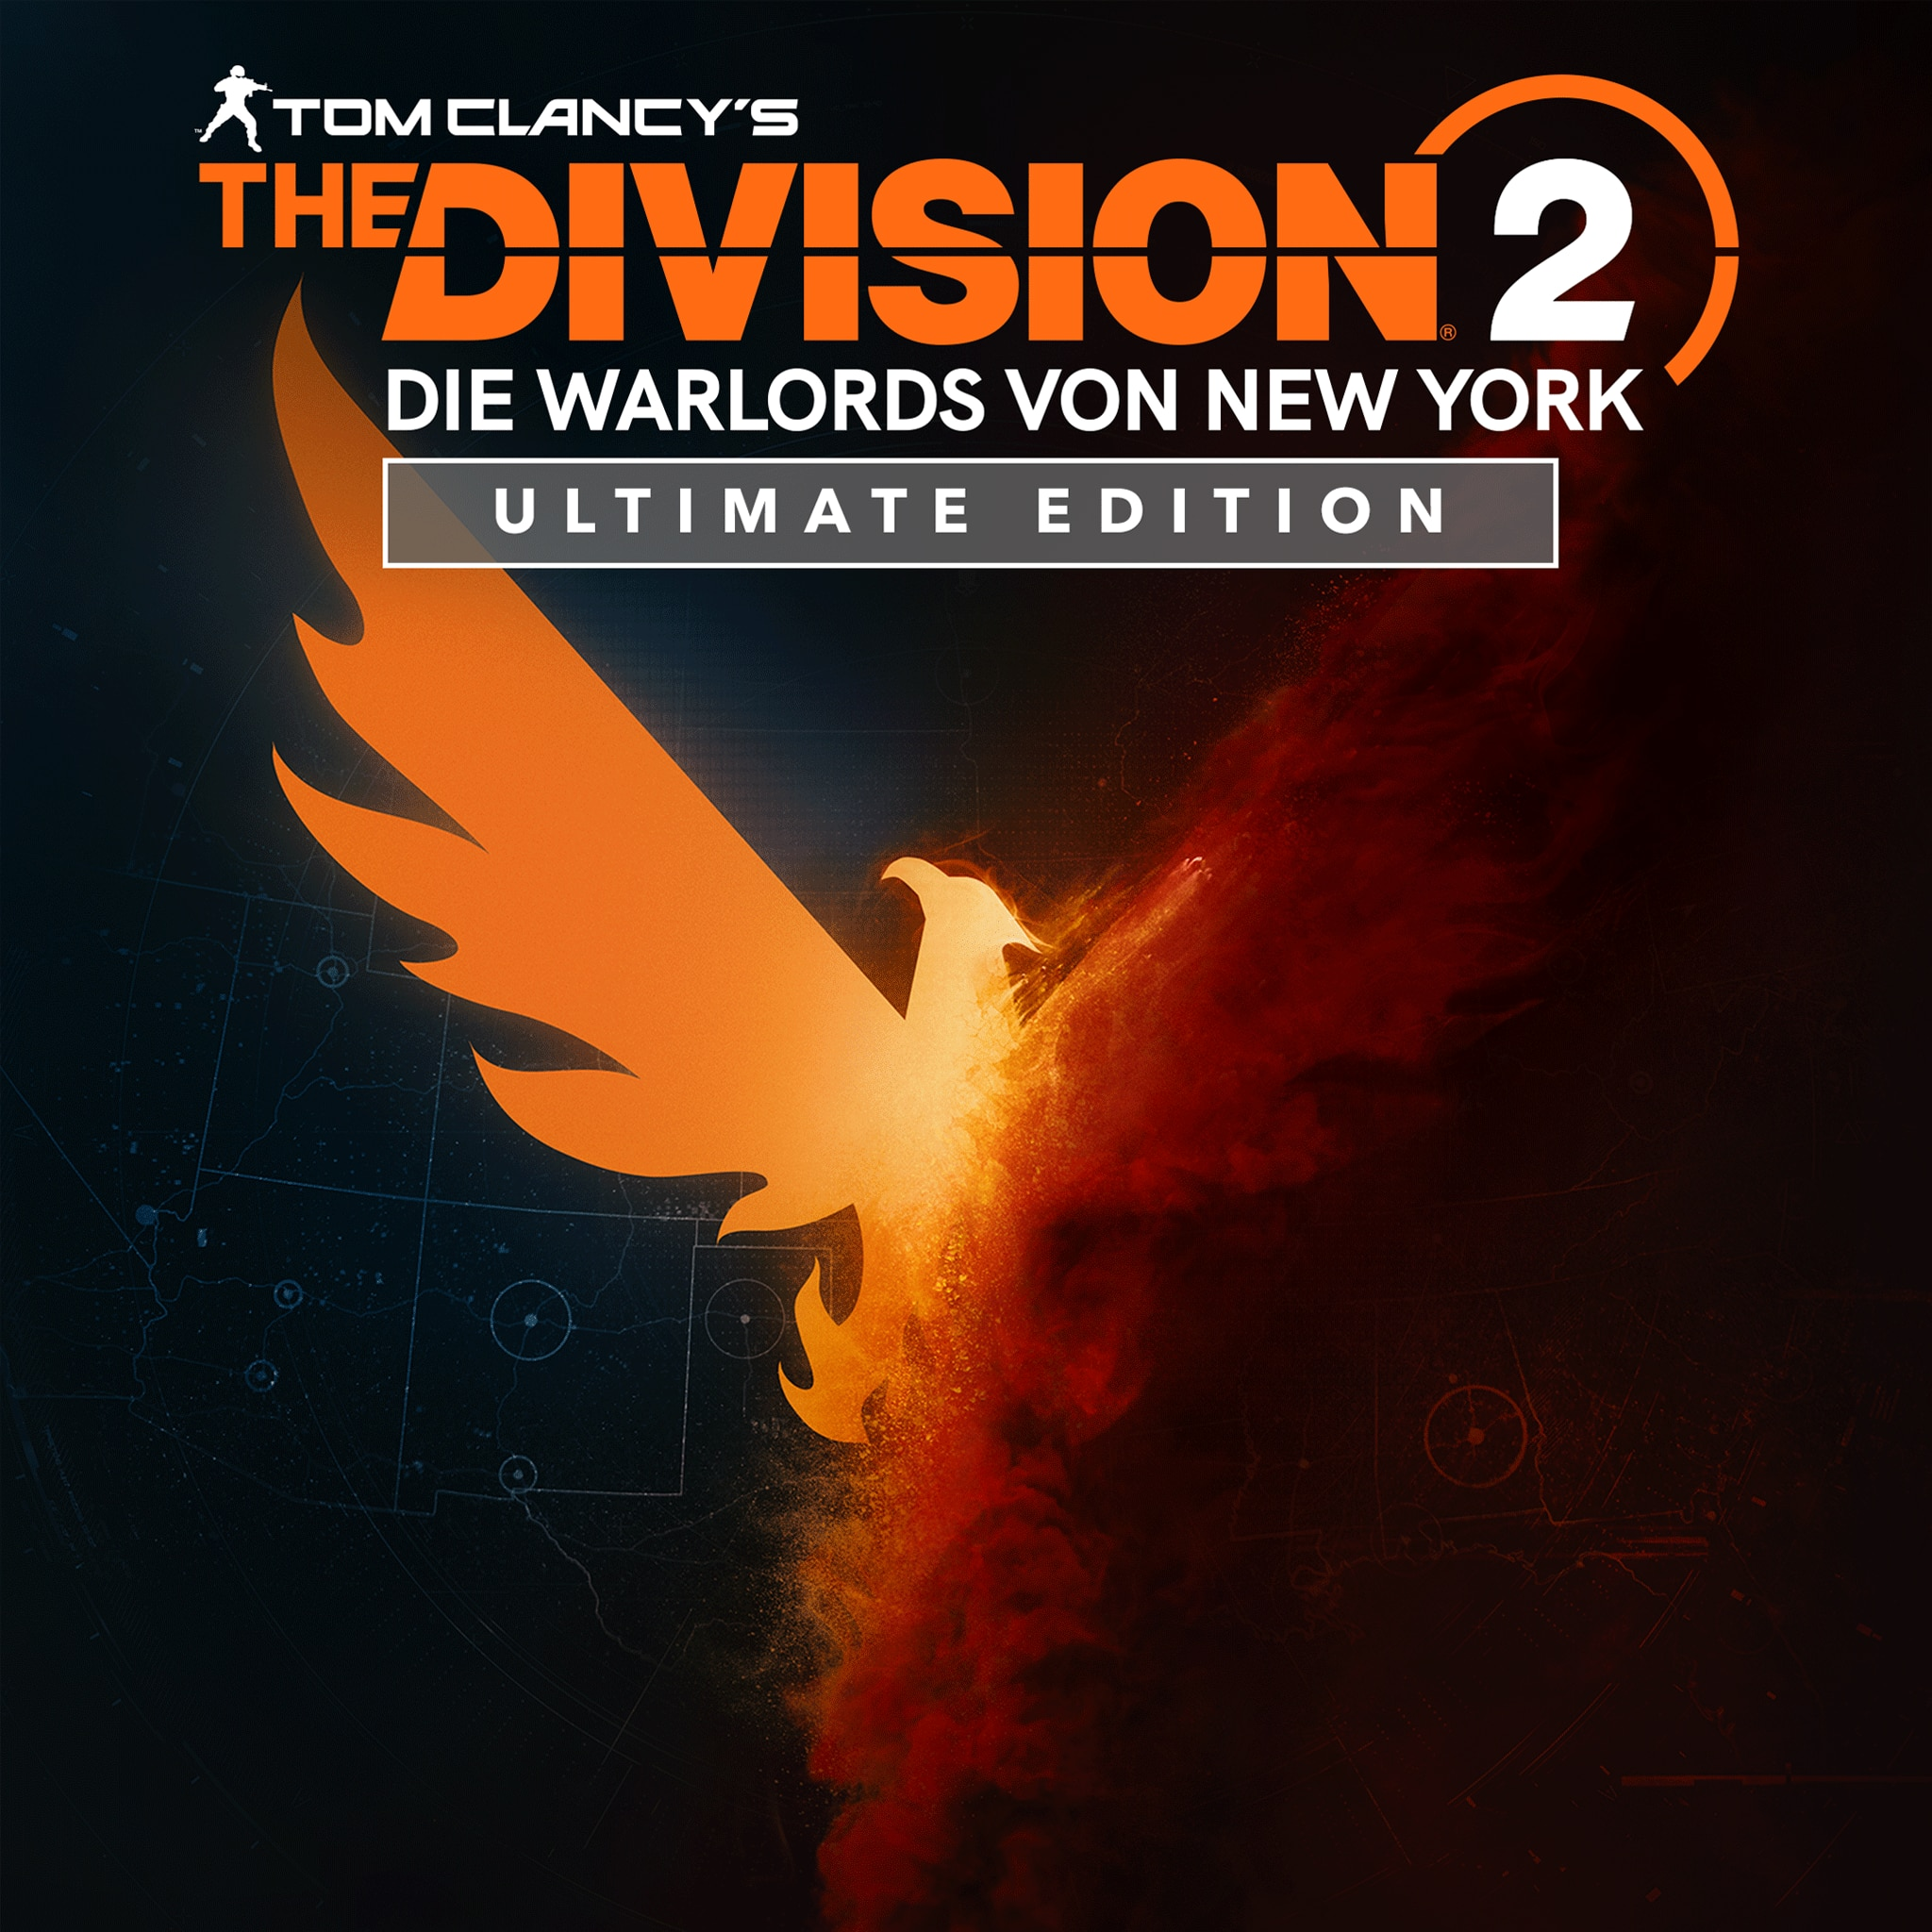 The Division 2 - Die Warlords von New York - Ultimate Edition